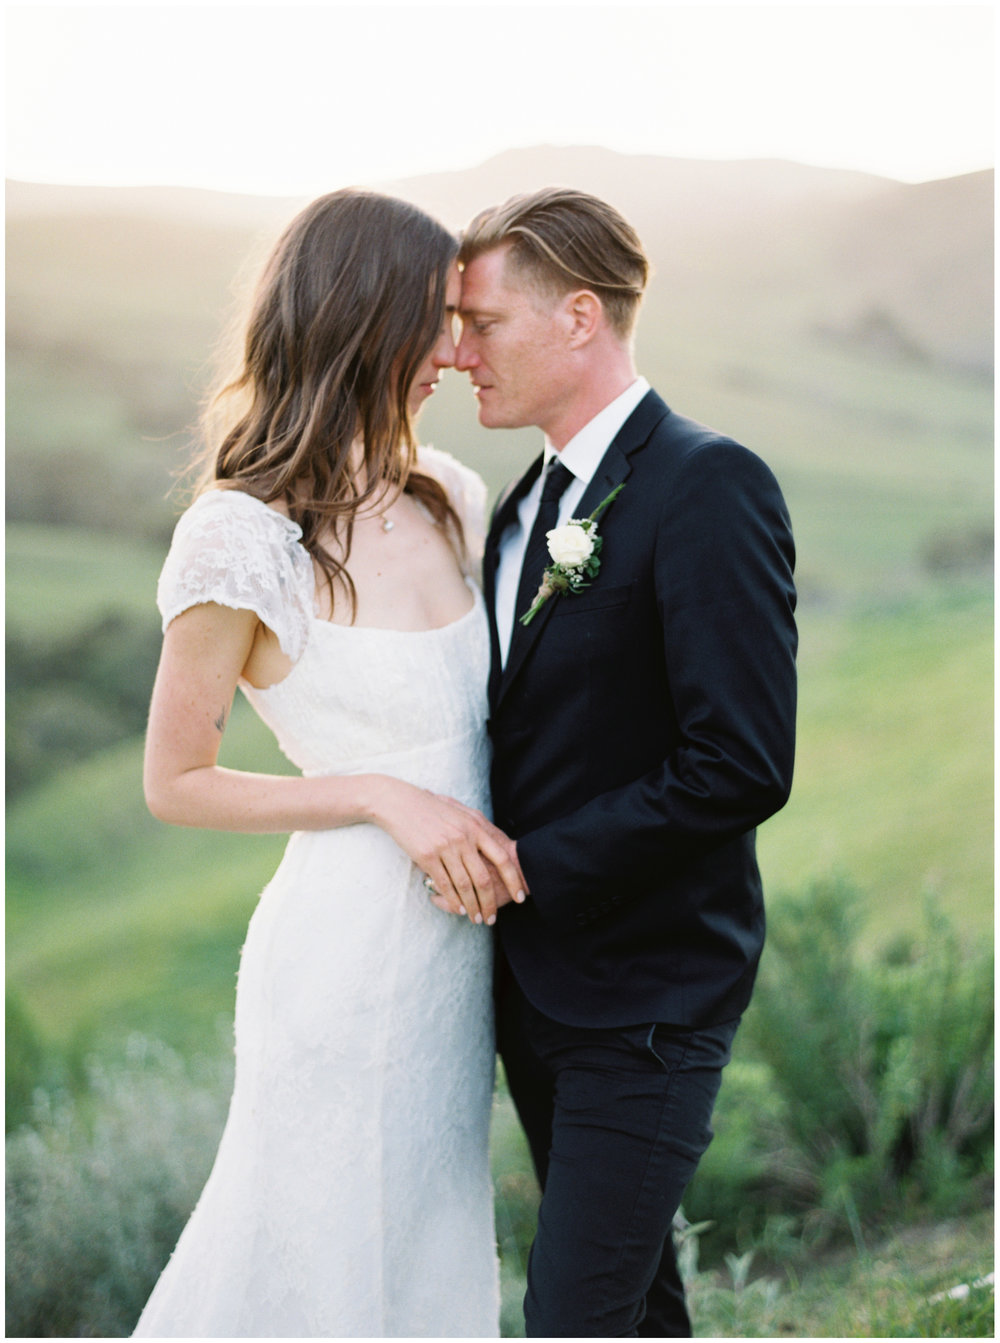 Santa_Barbara_Wedding_Photographer_Pinnel_Photography_La_Purisima_Mission-058.jpg